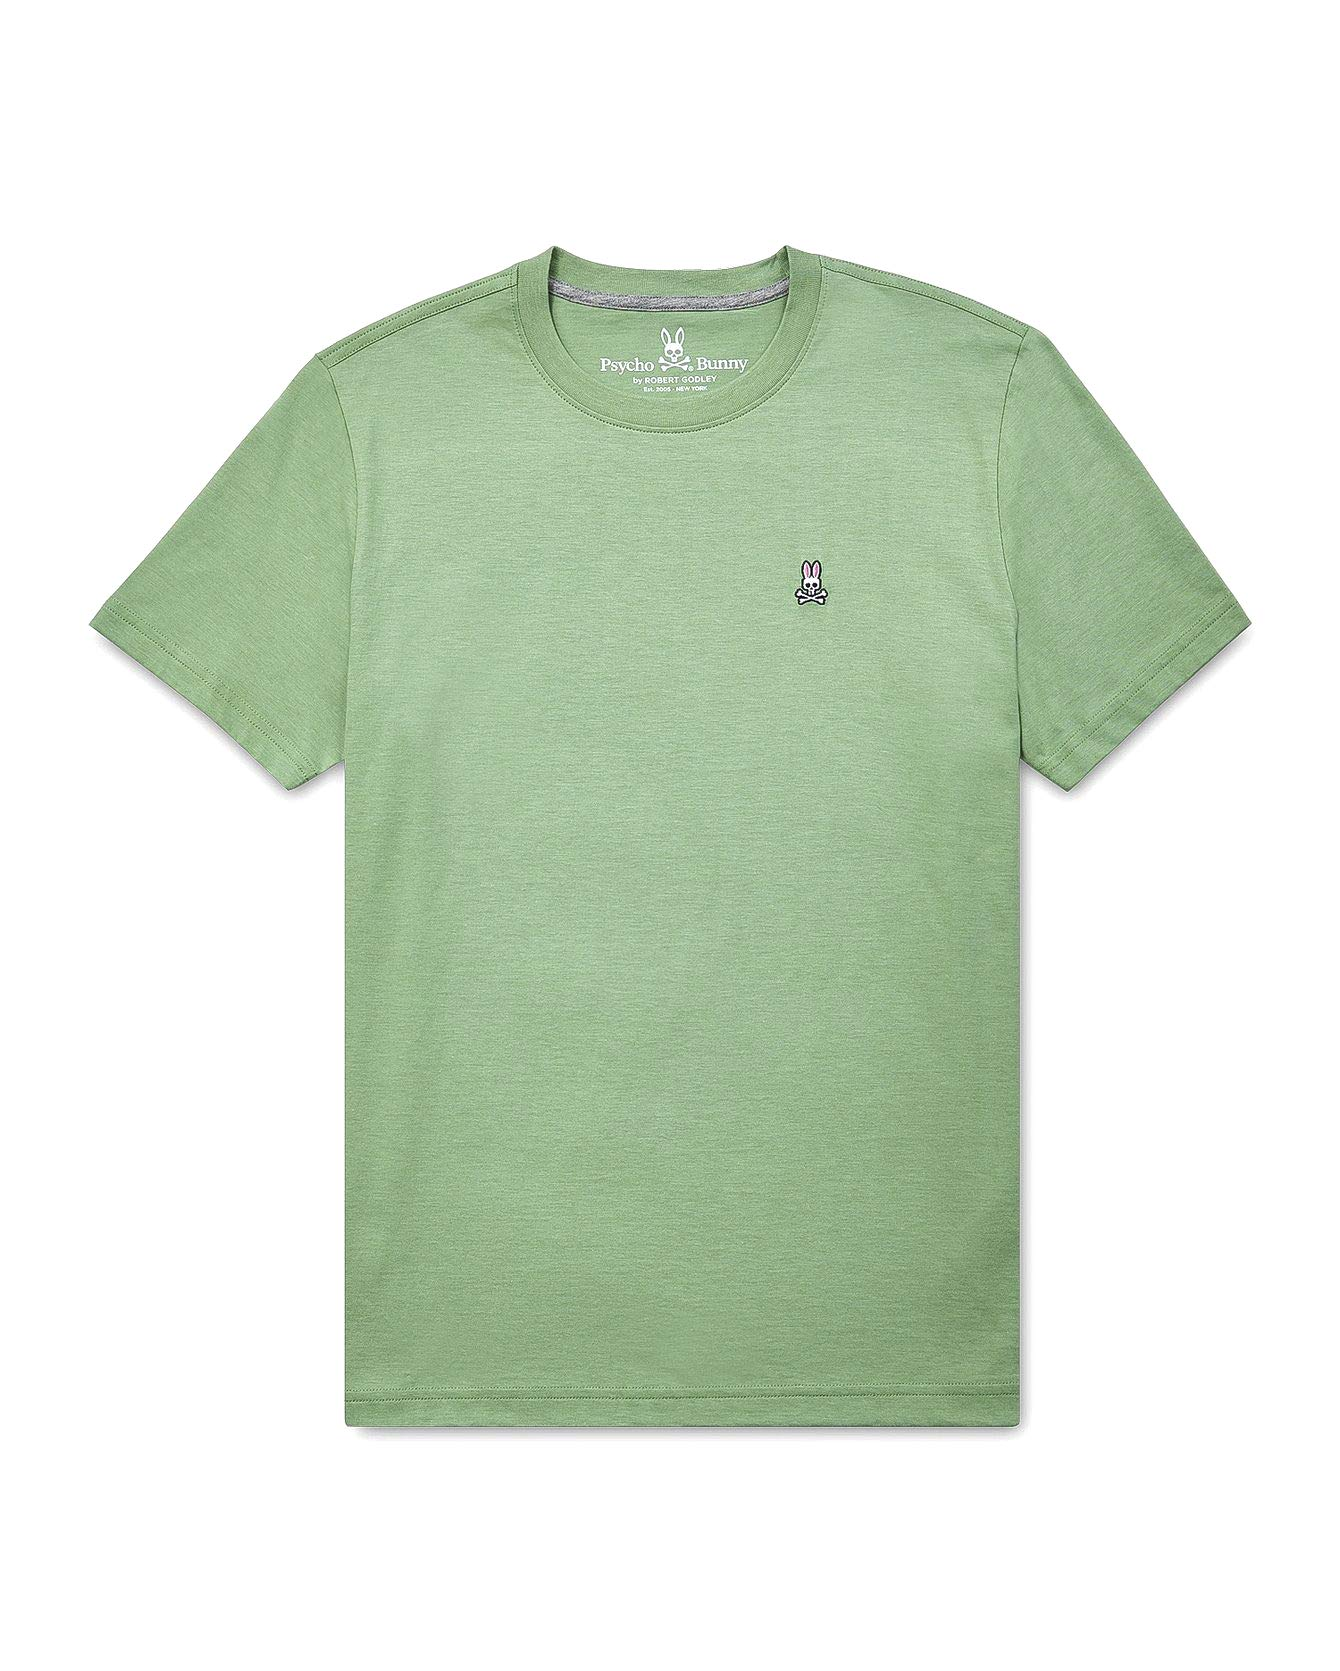 Psycho Bunny Men's Crew Neck T-Shirt, Sage, X-Large